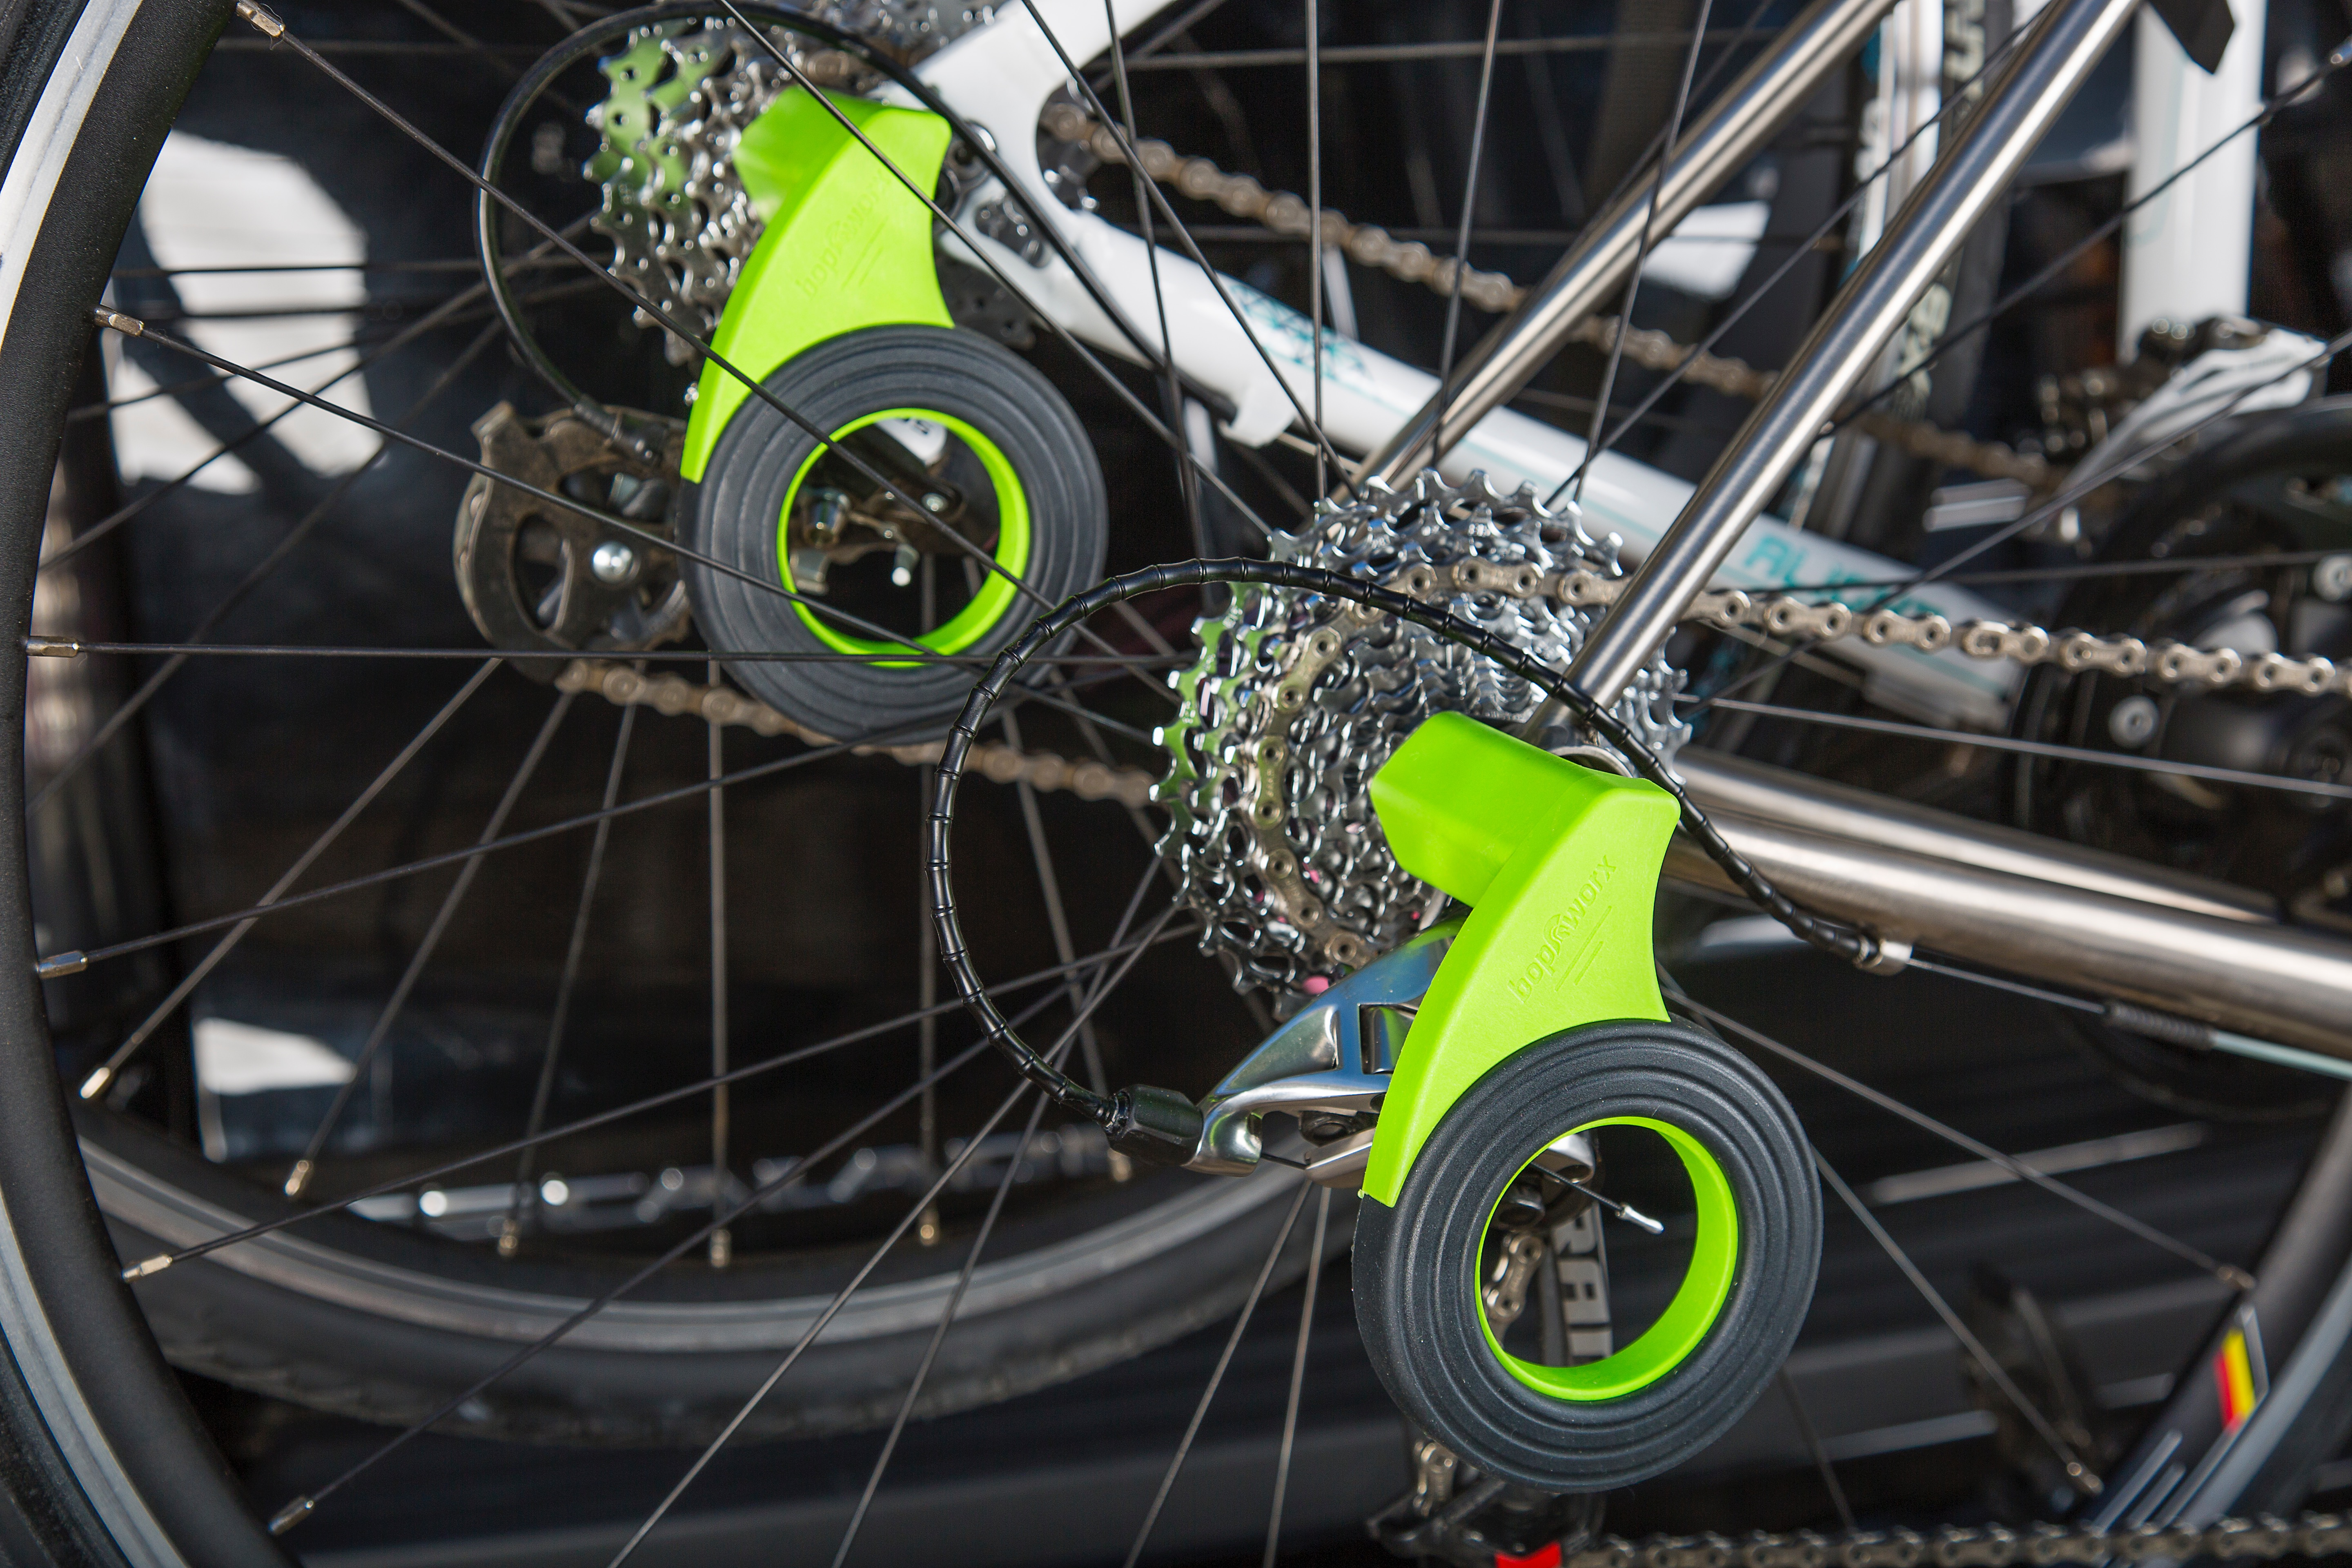 Bopworx Offers Reusable Bike Protection Products For